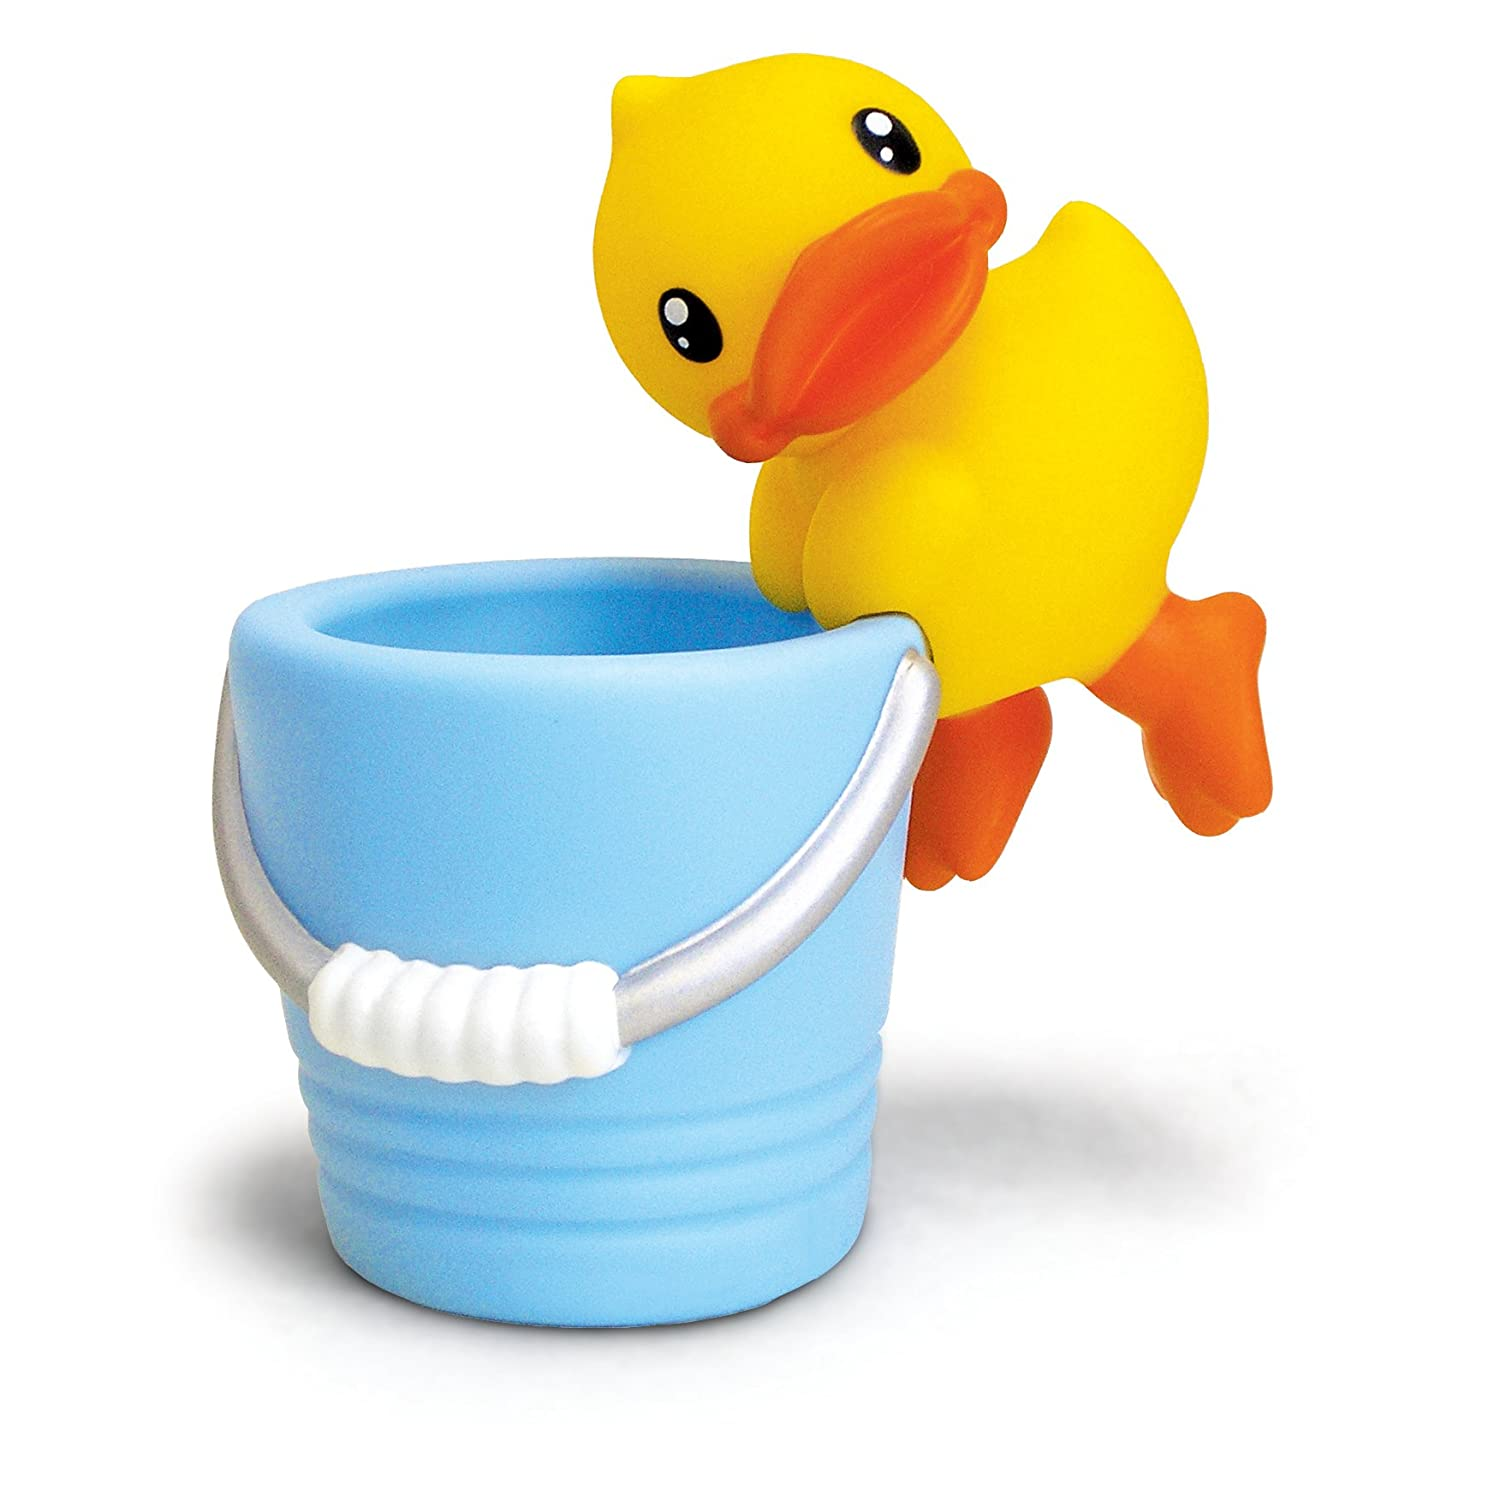 B.Duck Pen Holder Yellow Semk 1800071